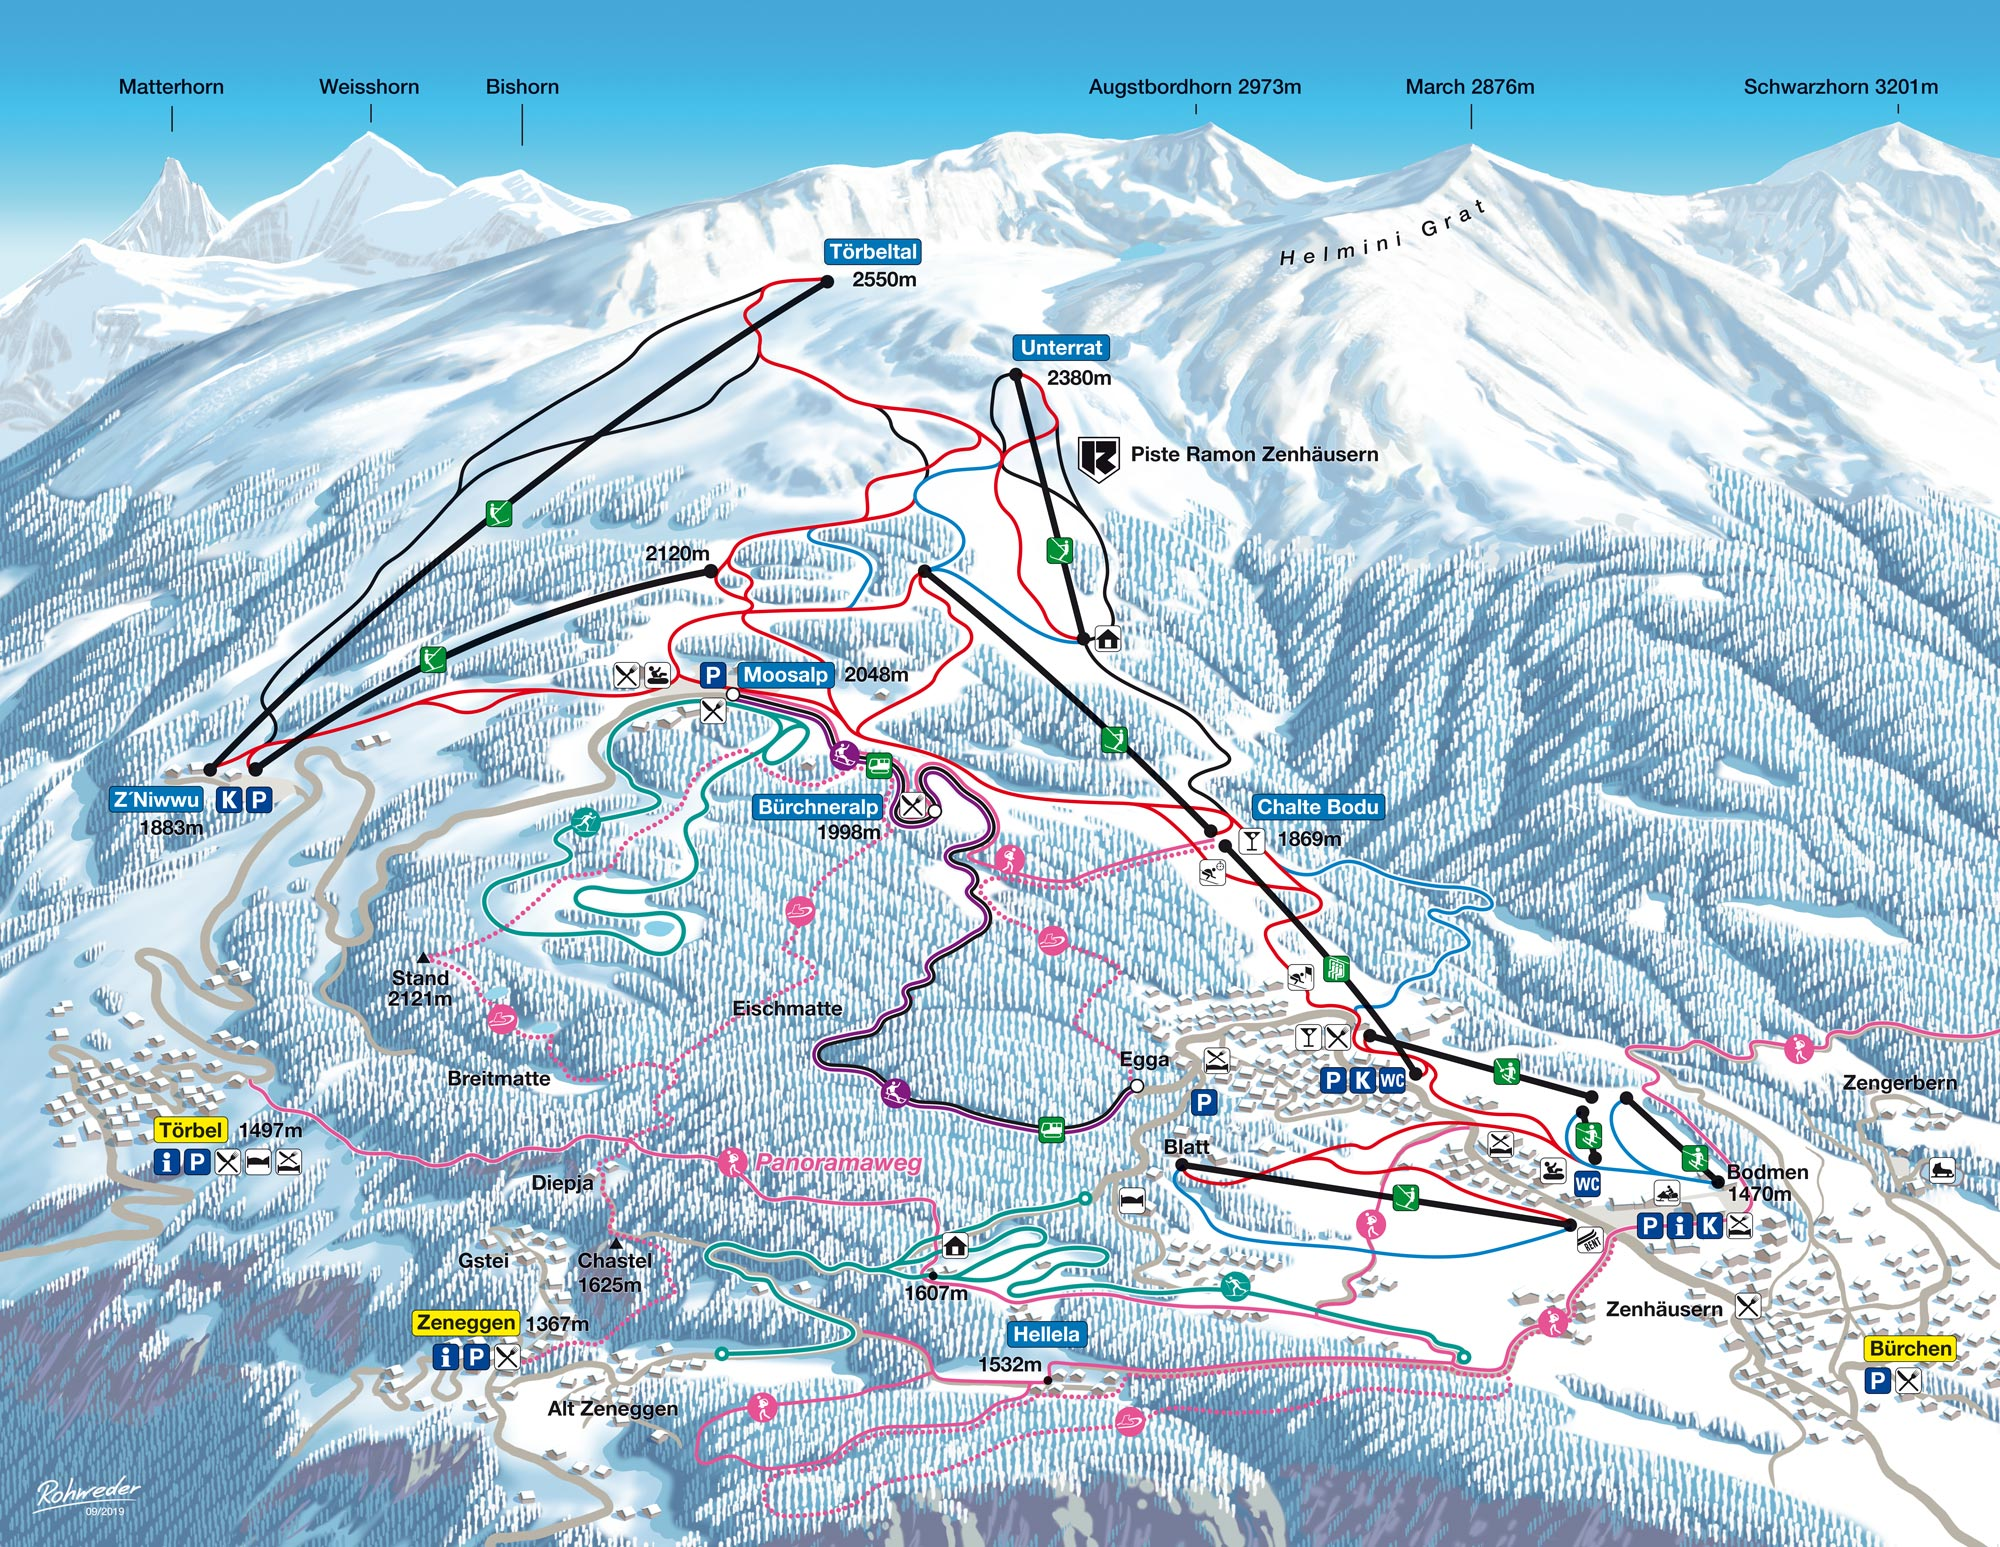 Buerchen Moosalp Winter Pistenplan Ski Trail Map